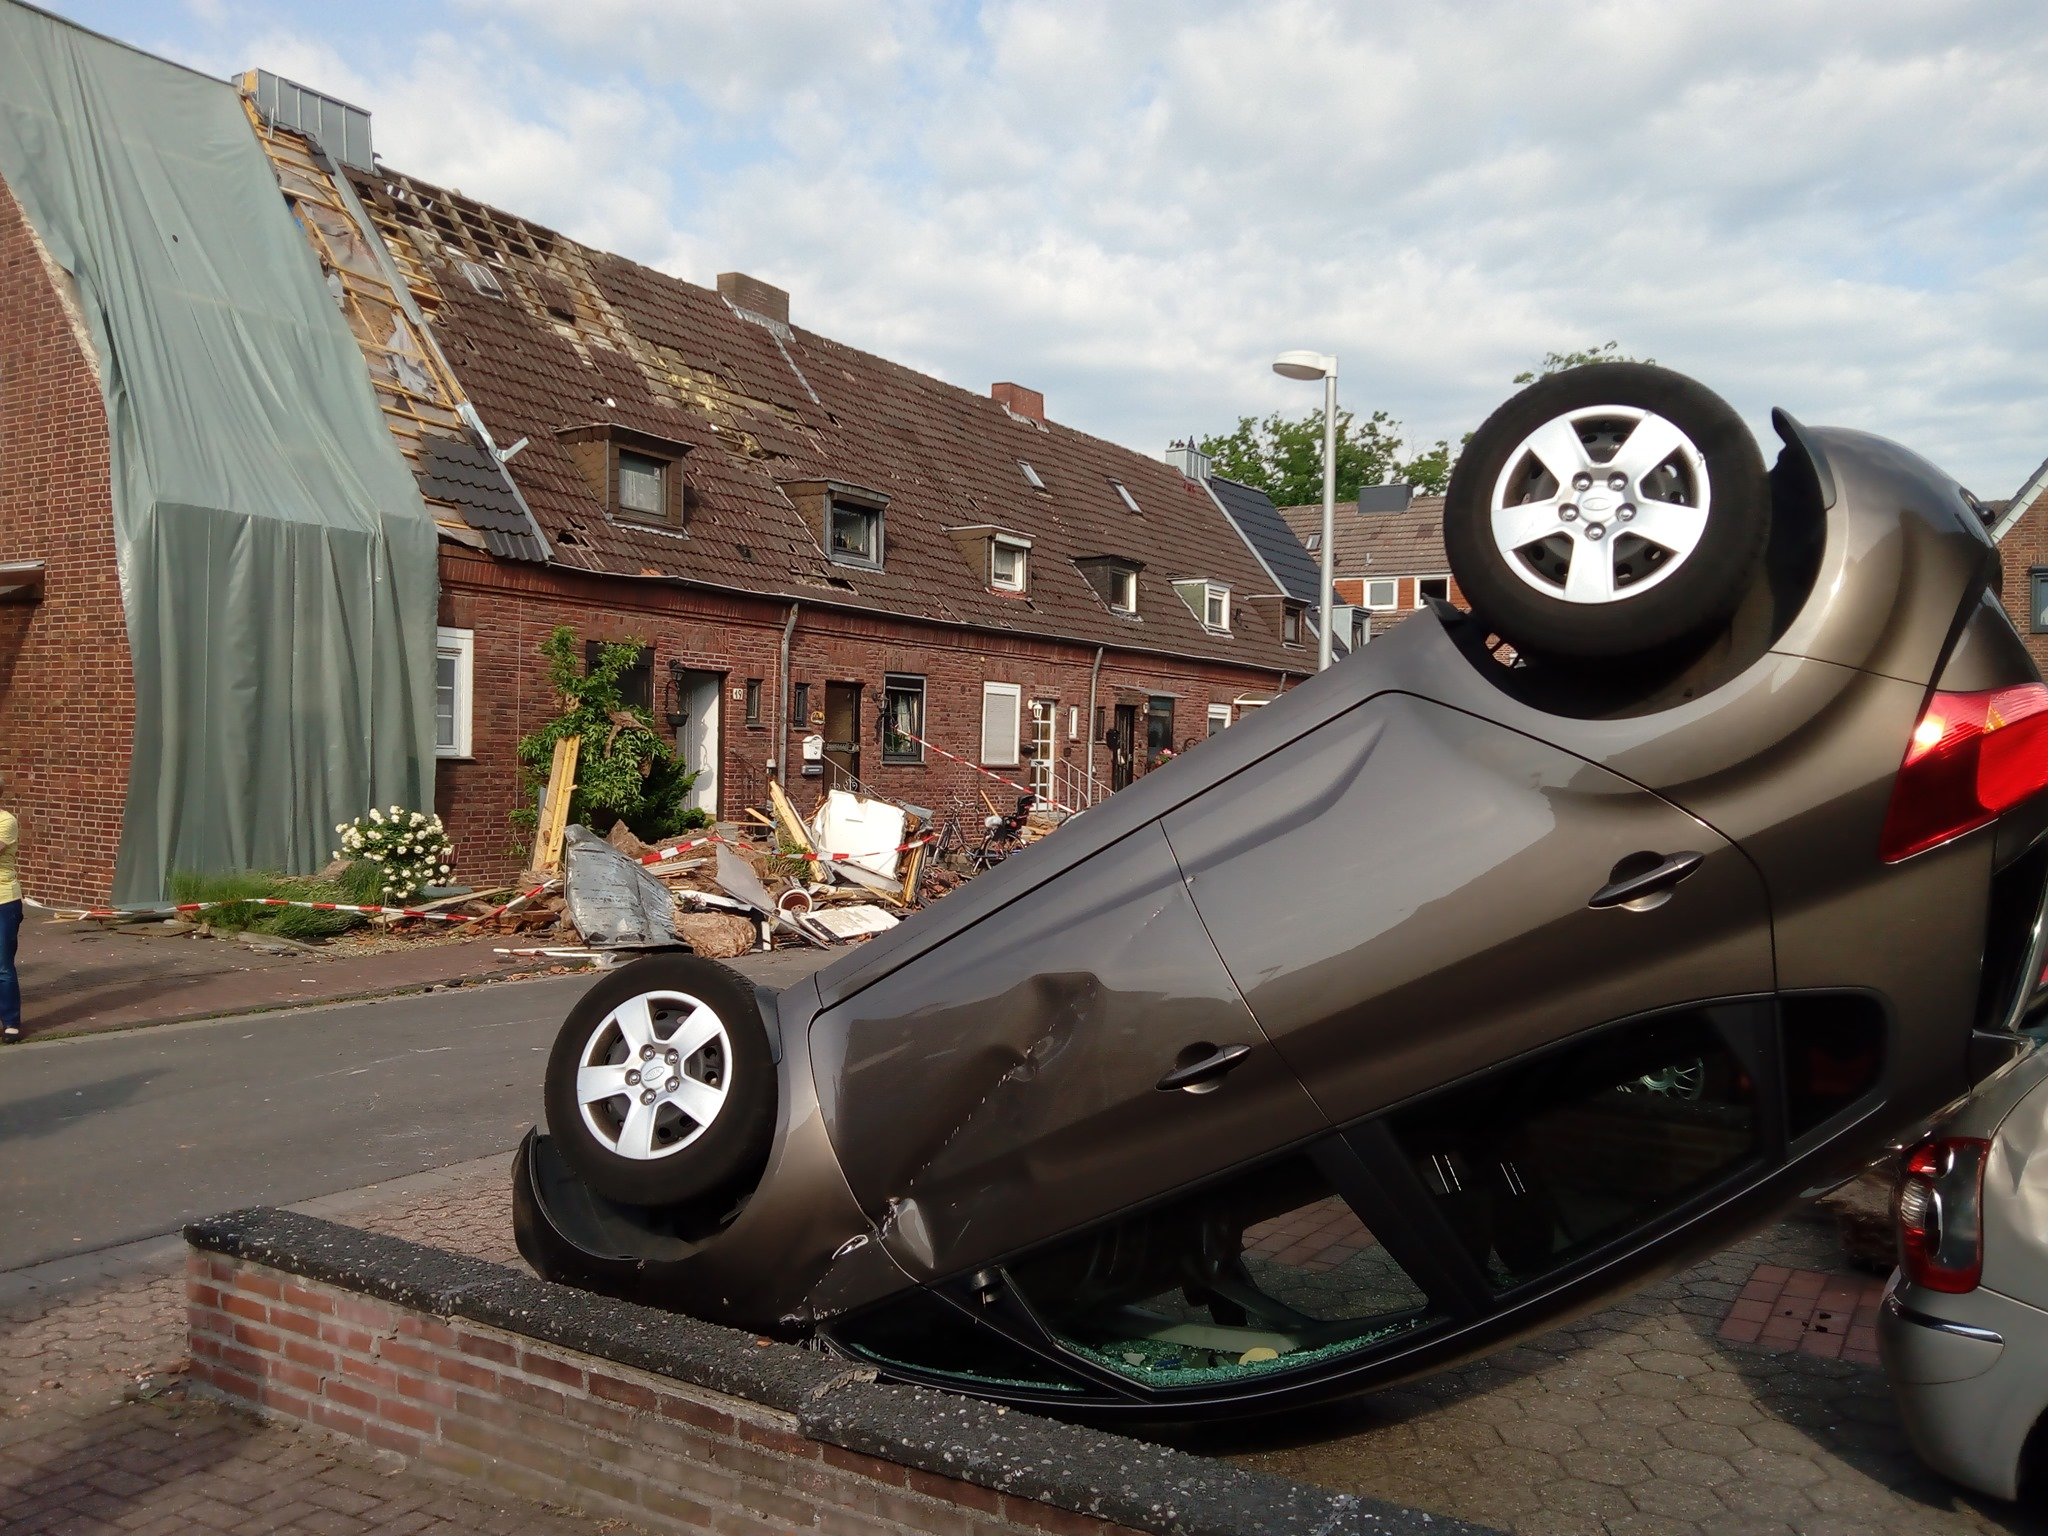 Tornado damage in Bocholt, North Rhine-Westphalia. On Tuesday night (04.06.2019), at 23:00hrs, a strong tornado targeted significant damage .